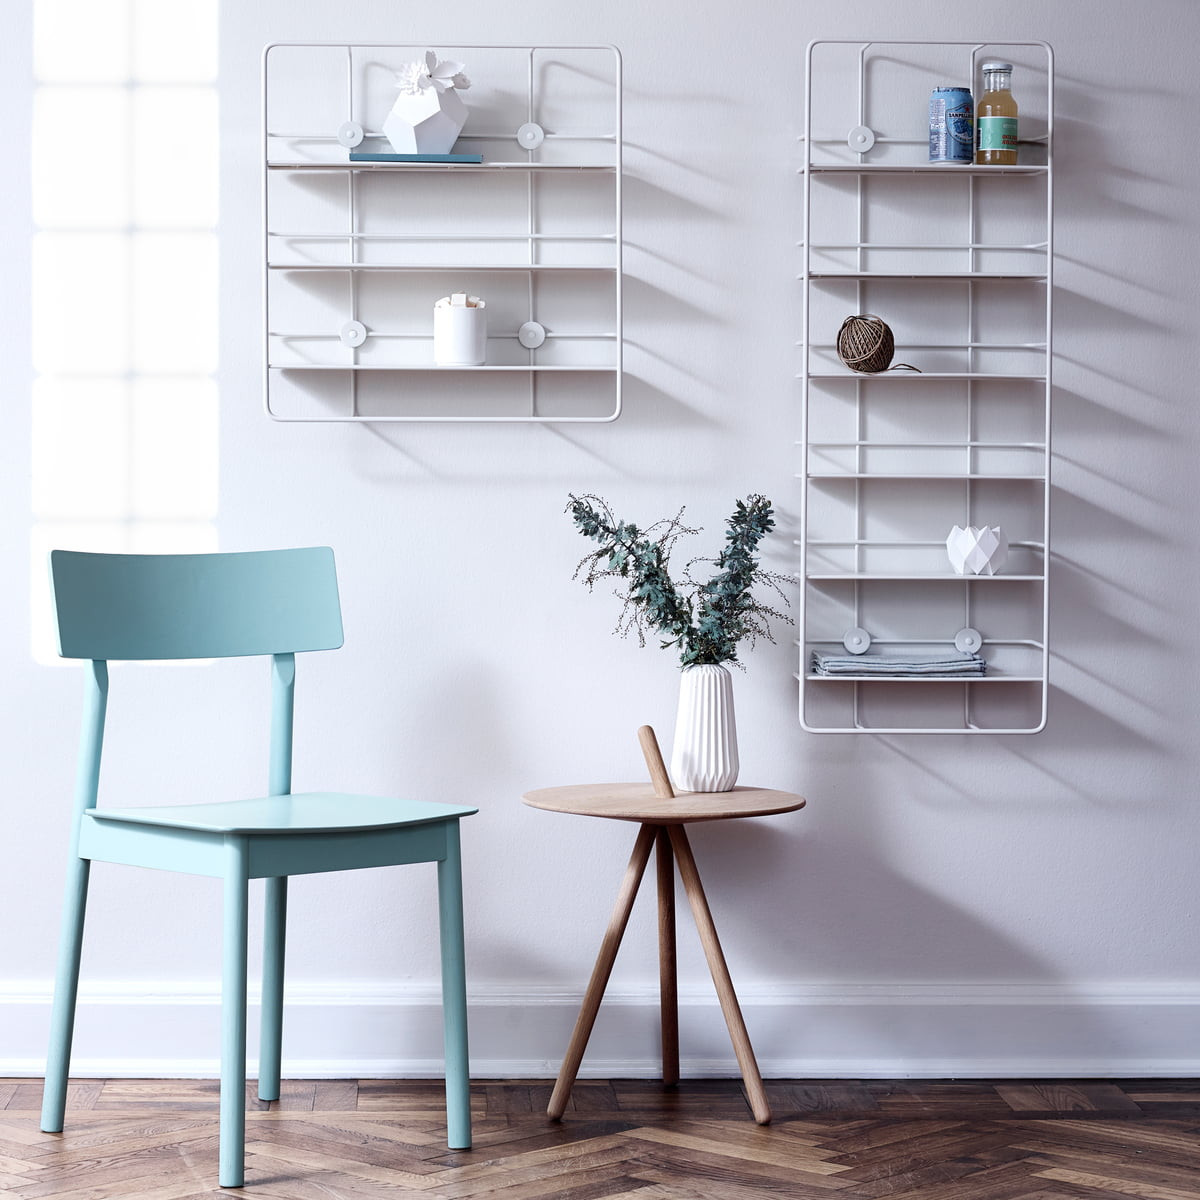 Best ideas about Vertical Wall Shelf . Save or Pin Buy the Coupé vertical wall shelf by Woud Now.